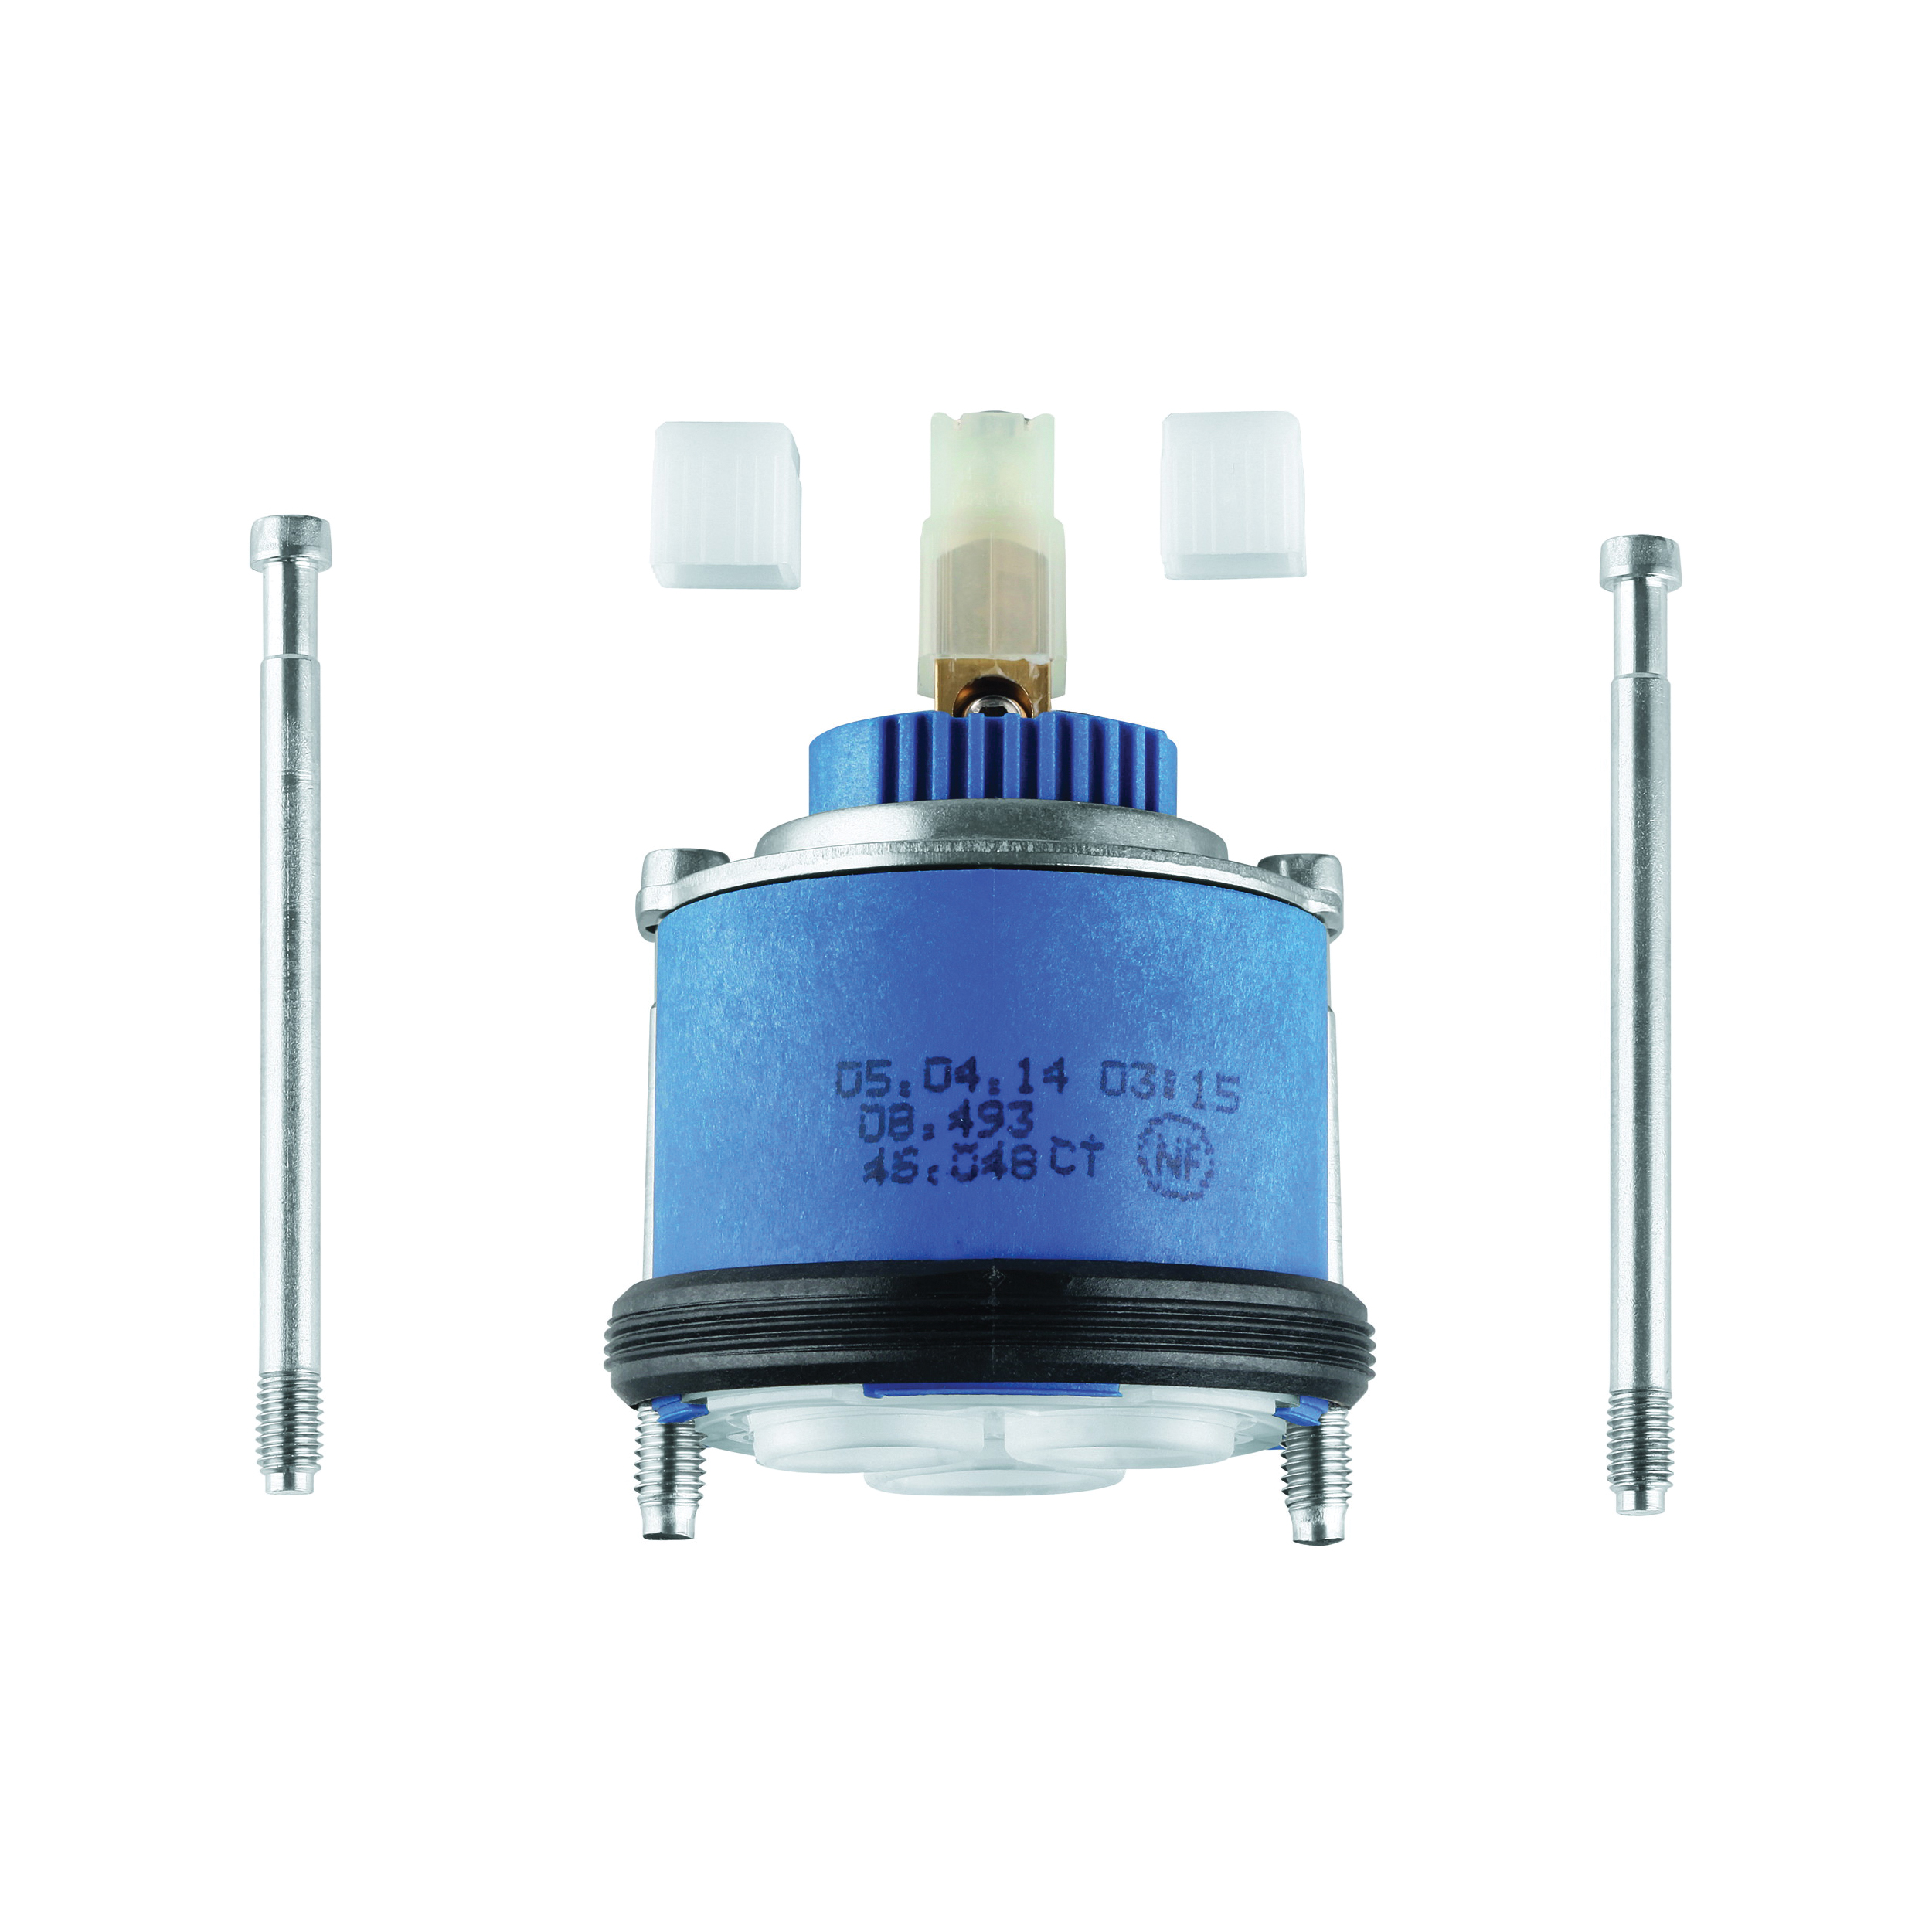 GROHE 46048000 Universal Cartridge, For Use With Single Lever Mixer, 46 mm Dia, Import